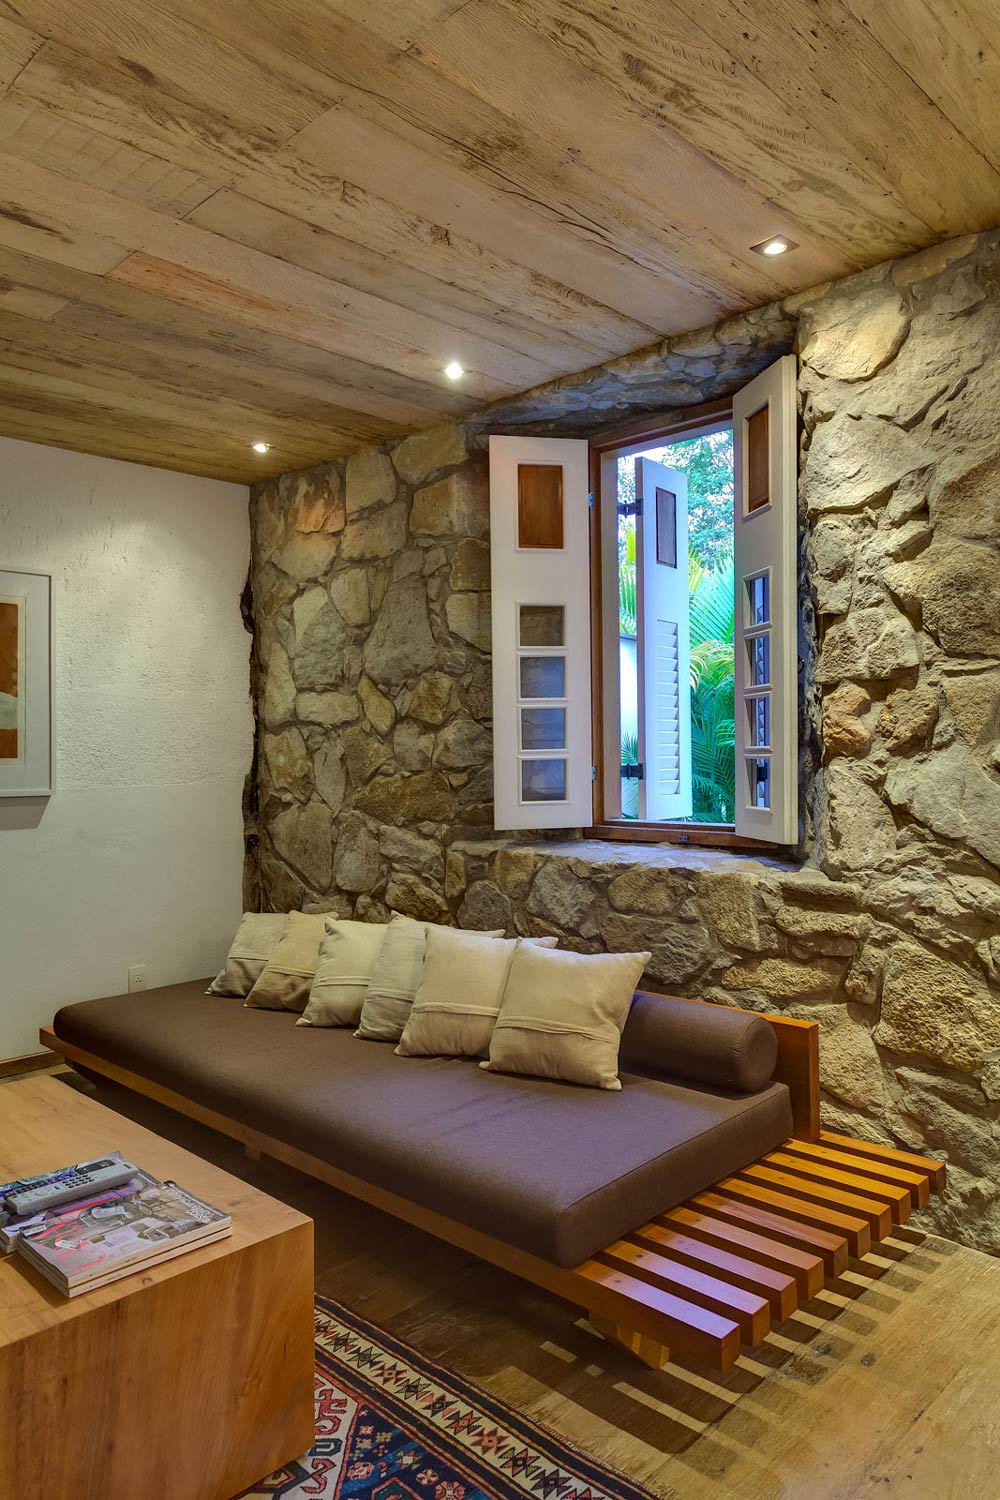 Bedroom, Futon, Charming Rustic House in Amarante, Portugal